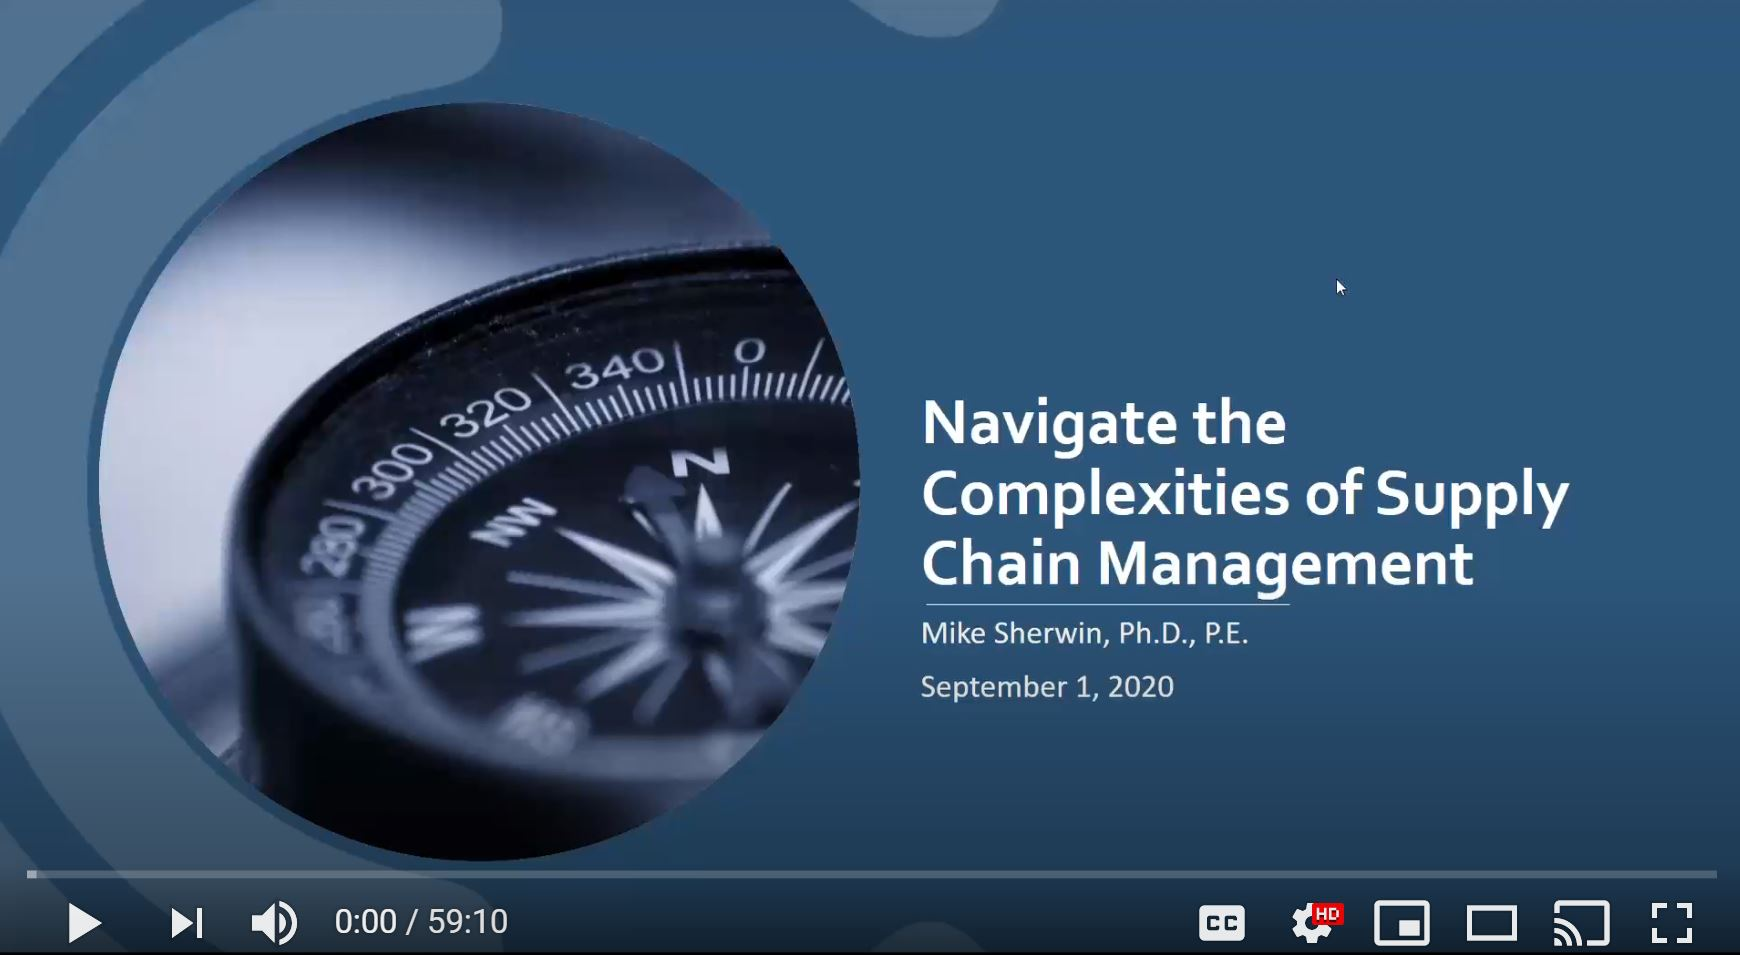 Navigating the Complexities of Supply Chain Management